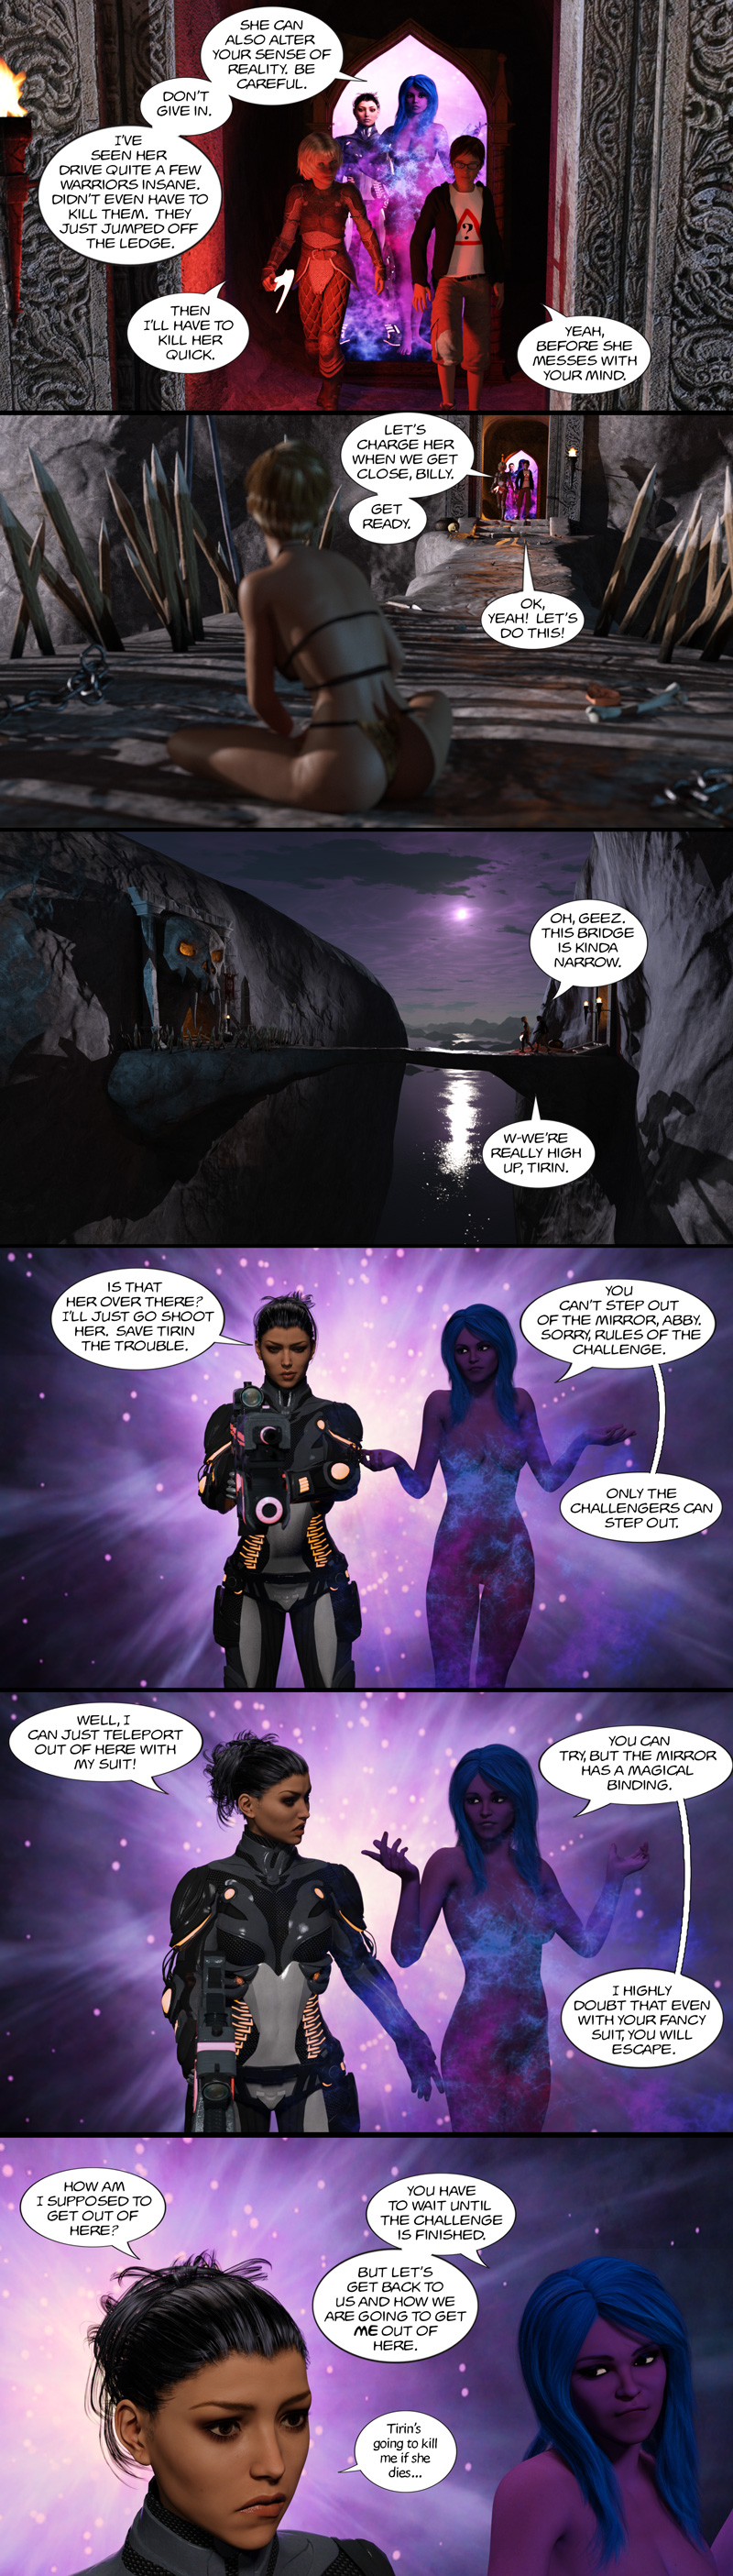 Chapter 13, page 18 – the doppelganger